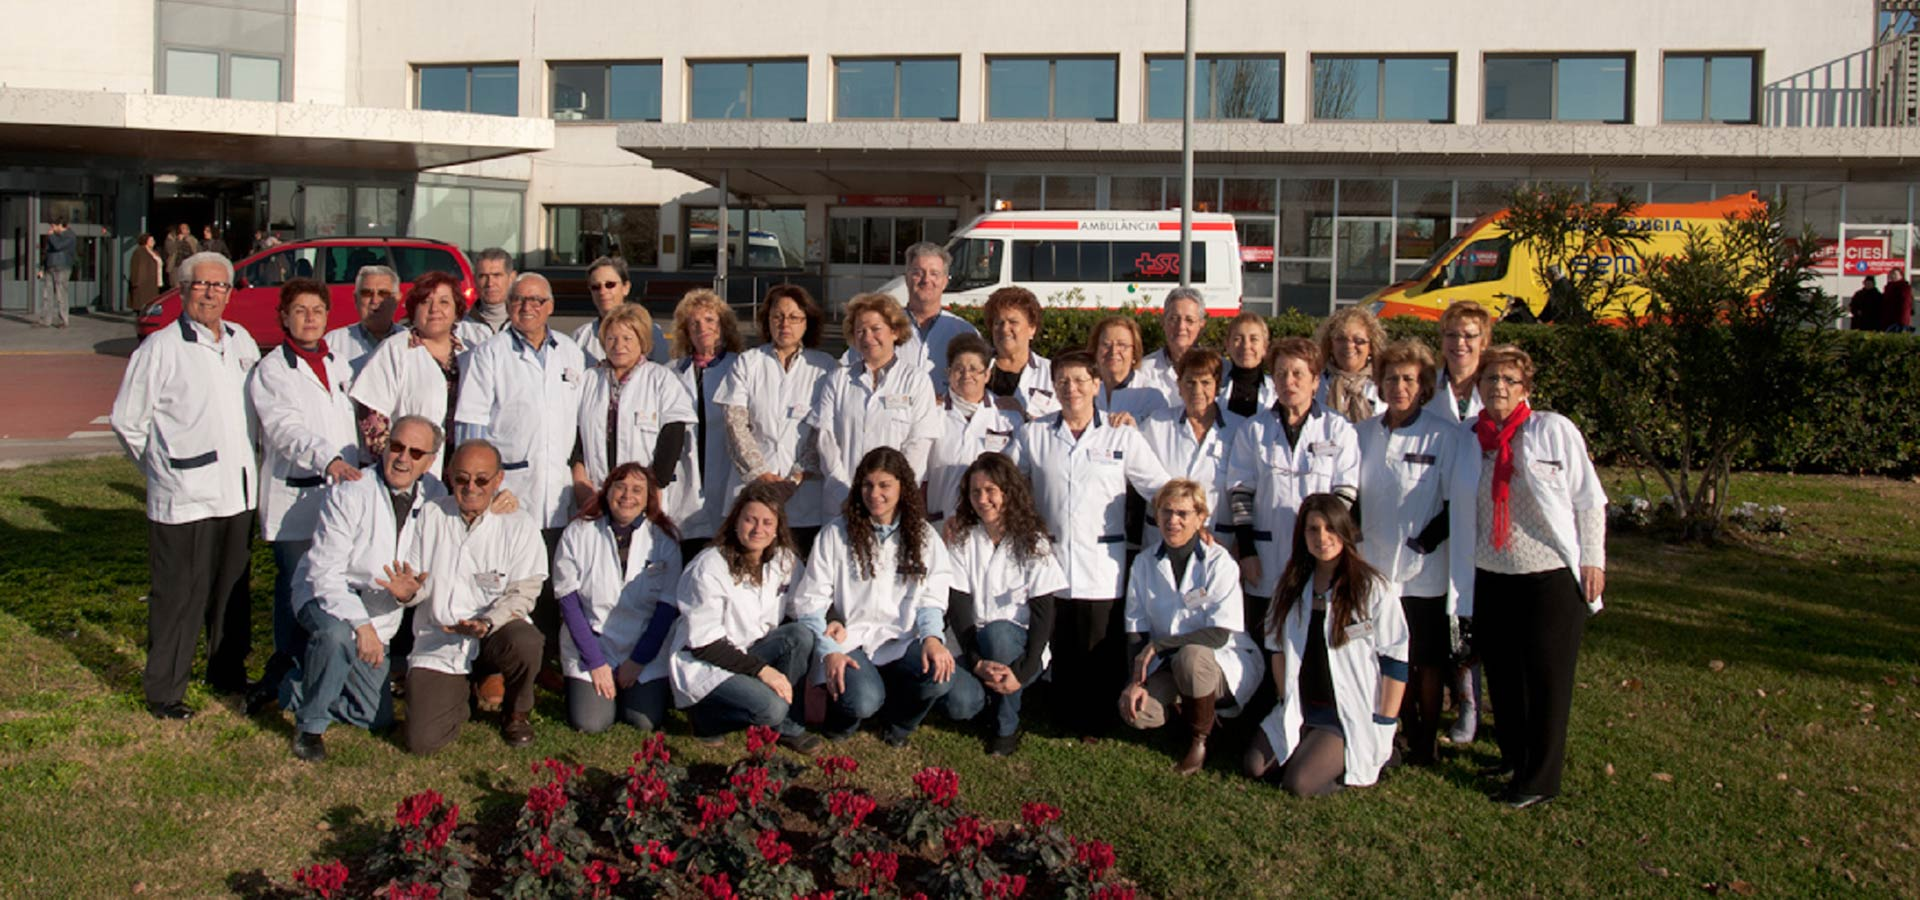 VOLUNTARIAT HOSPITALARI